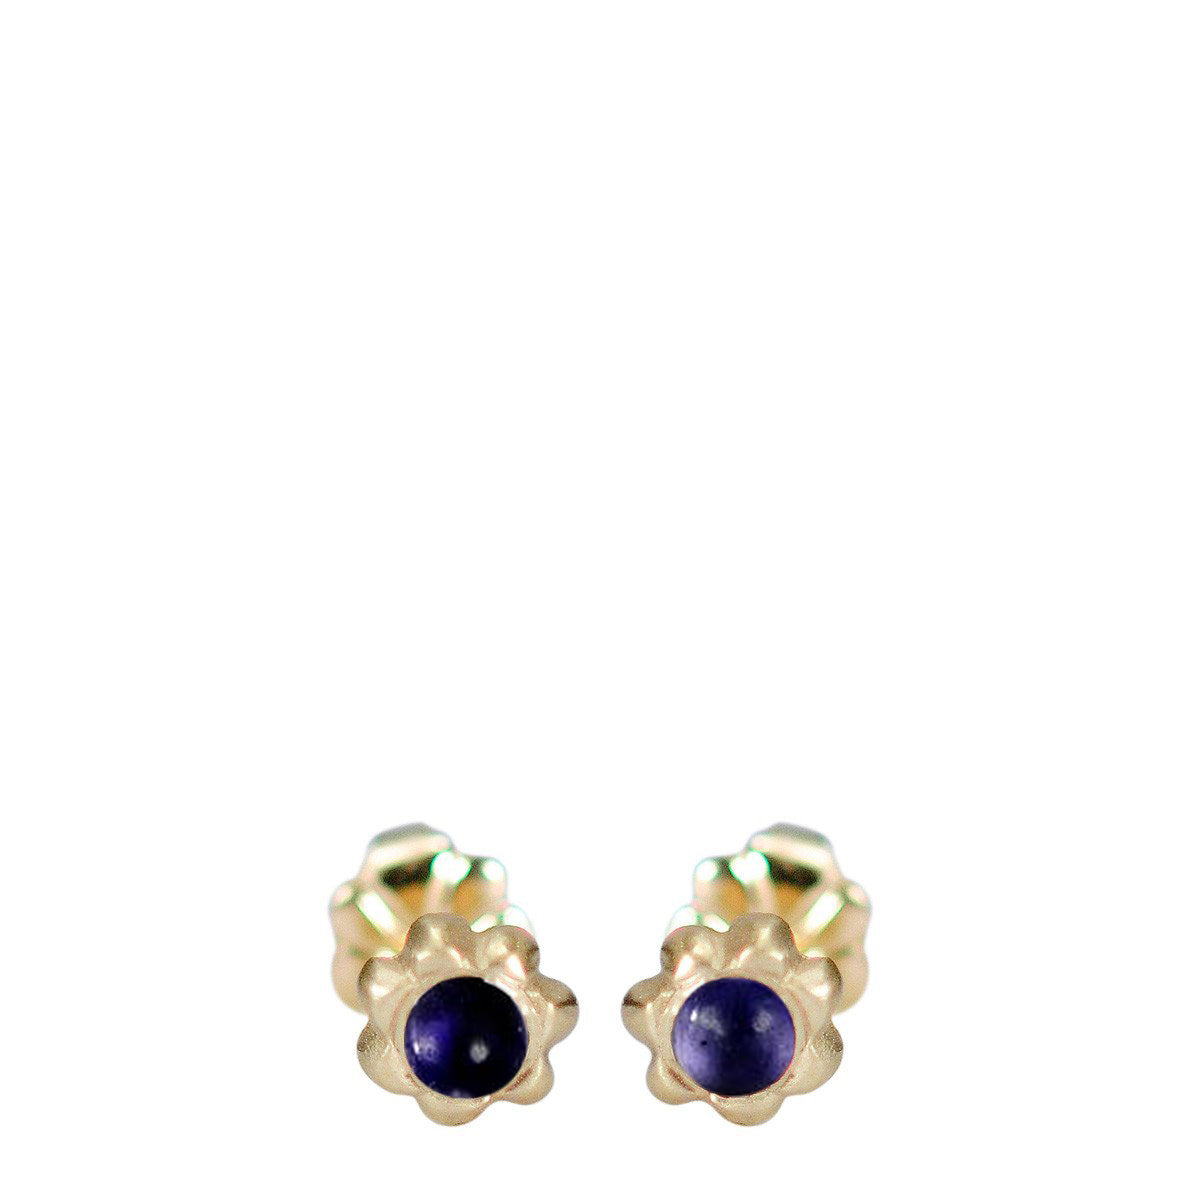 10K Gold Tiny Star Flower Stud with Iolite